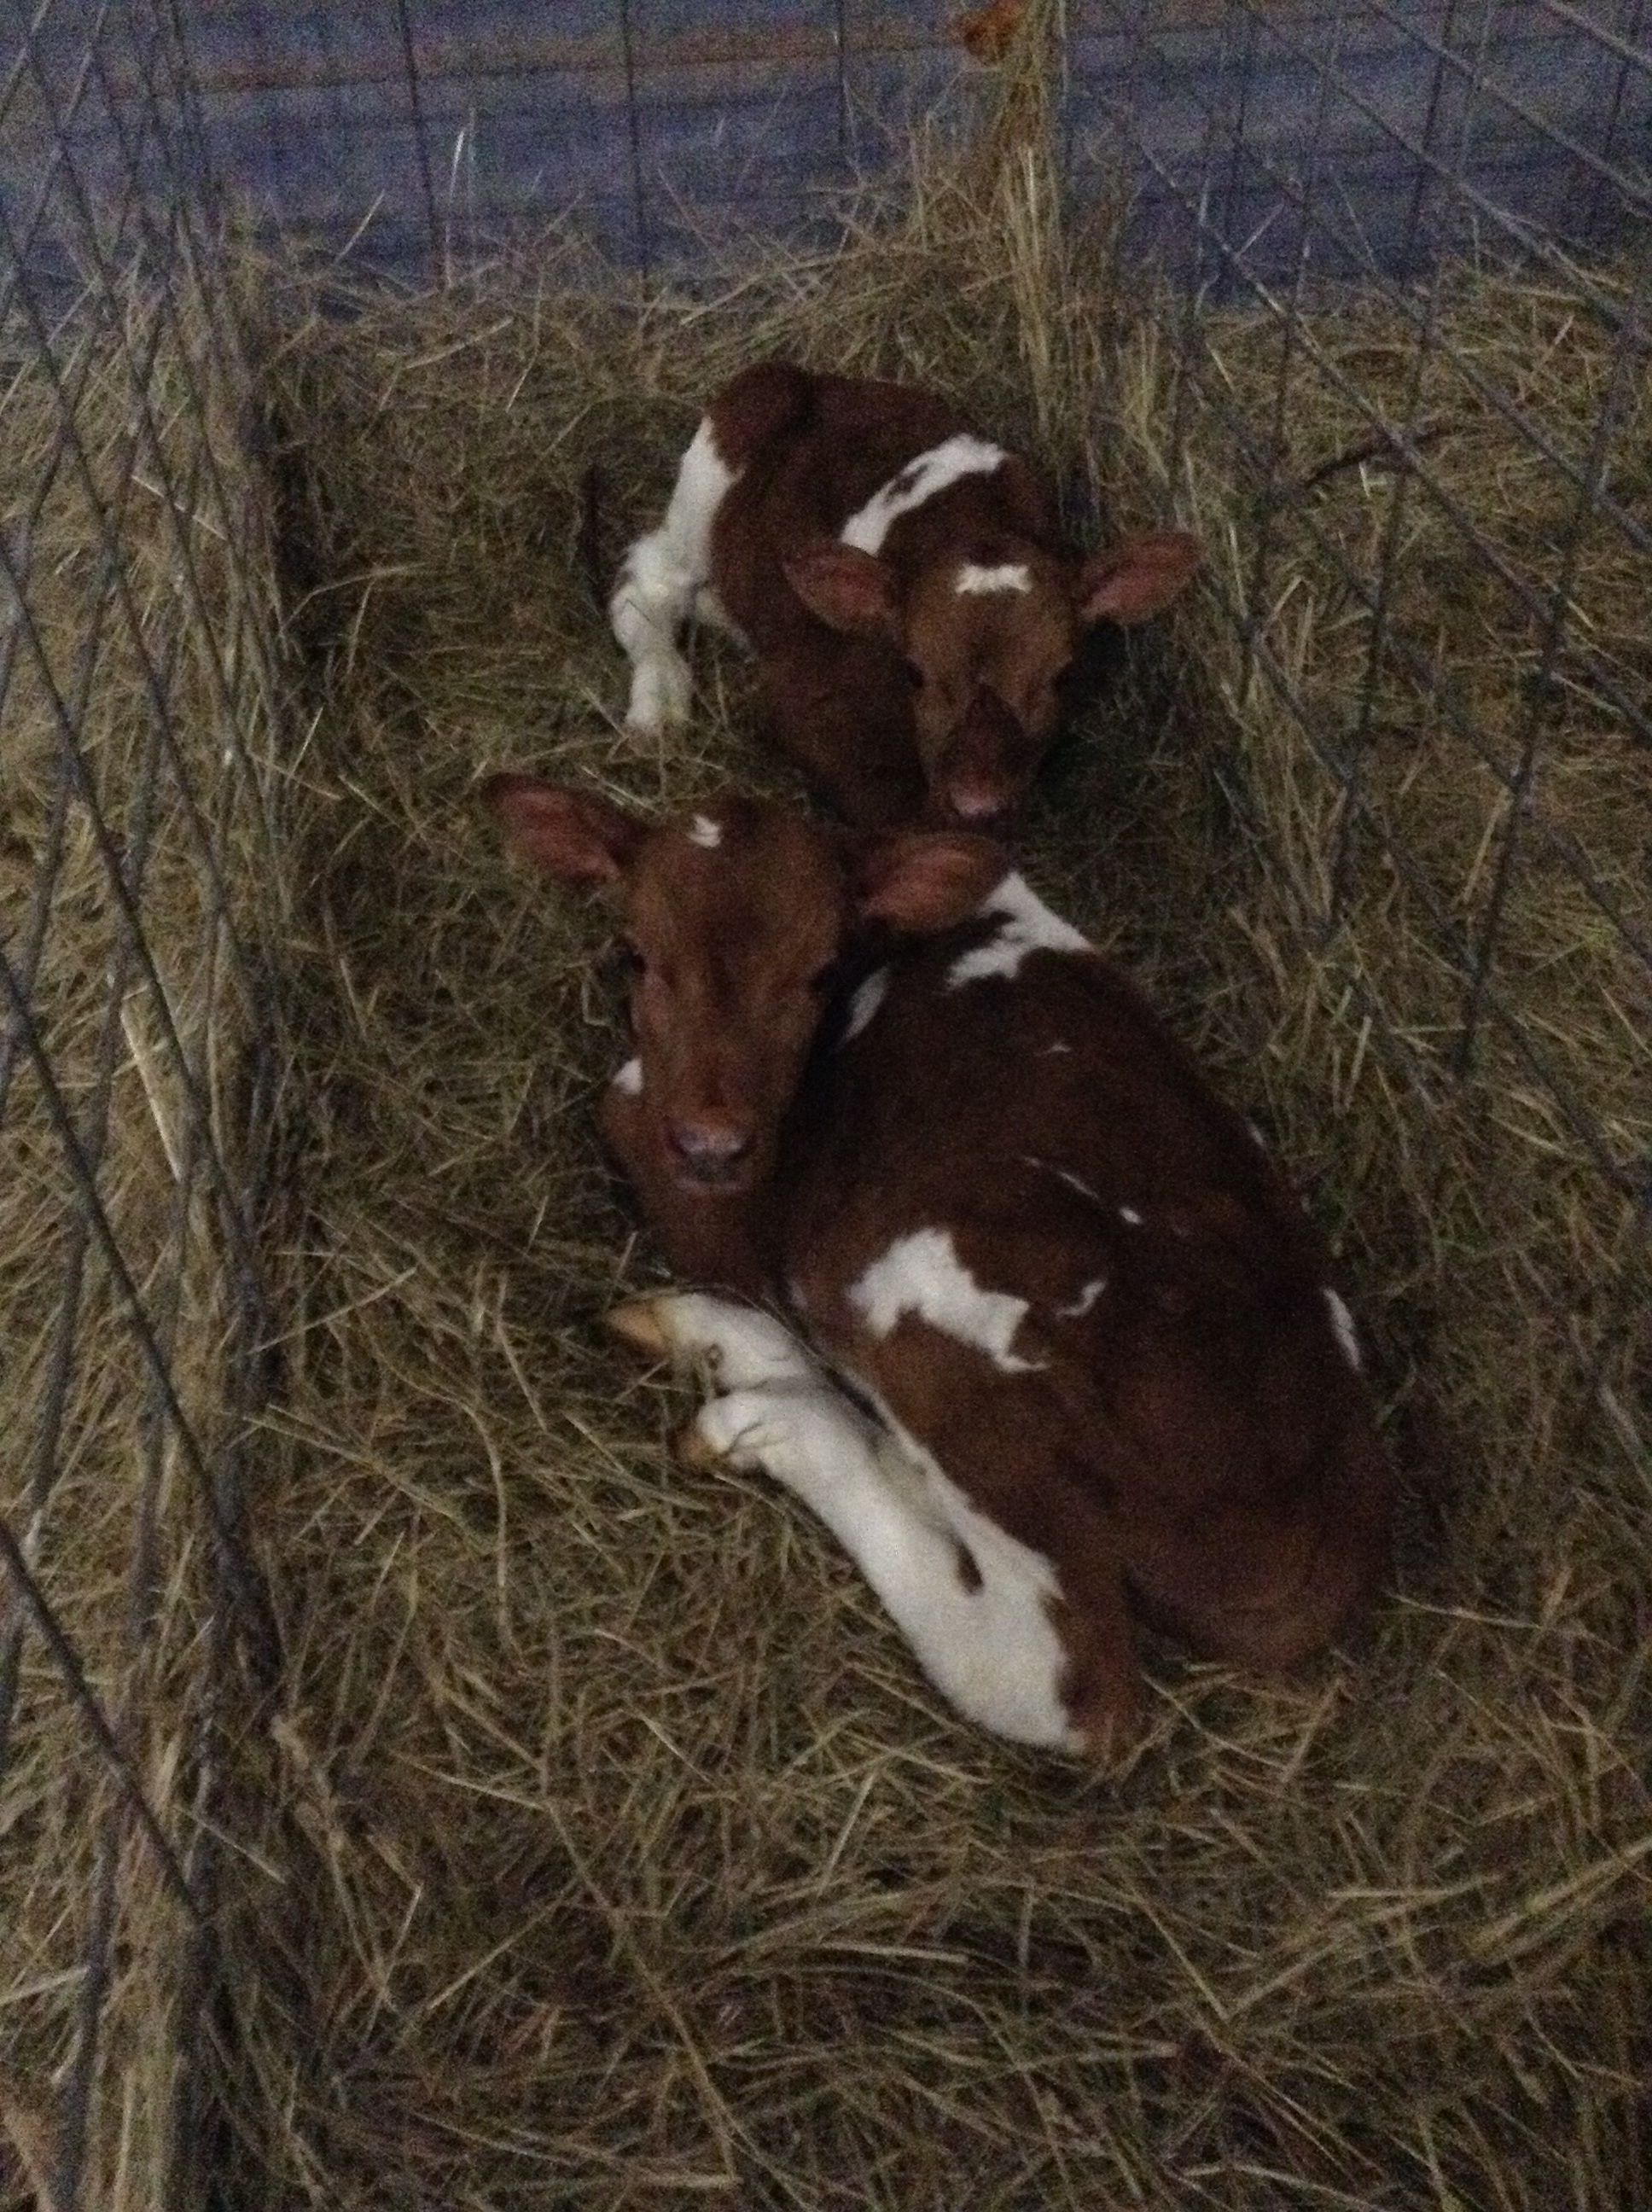 At the farm I spent 2 weeks @ working with the calves. And it got warmer so no need 4 a little coat. These where some twins that we keep together because we thought it was cute❤️